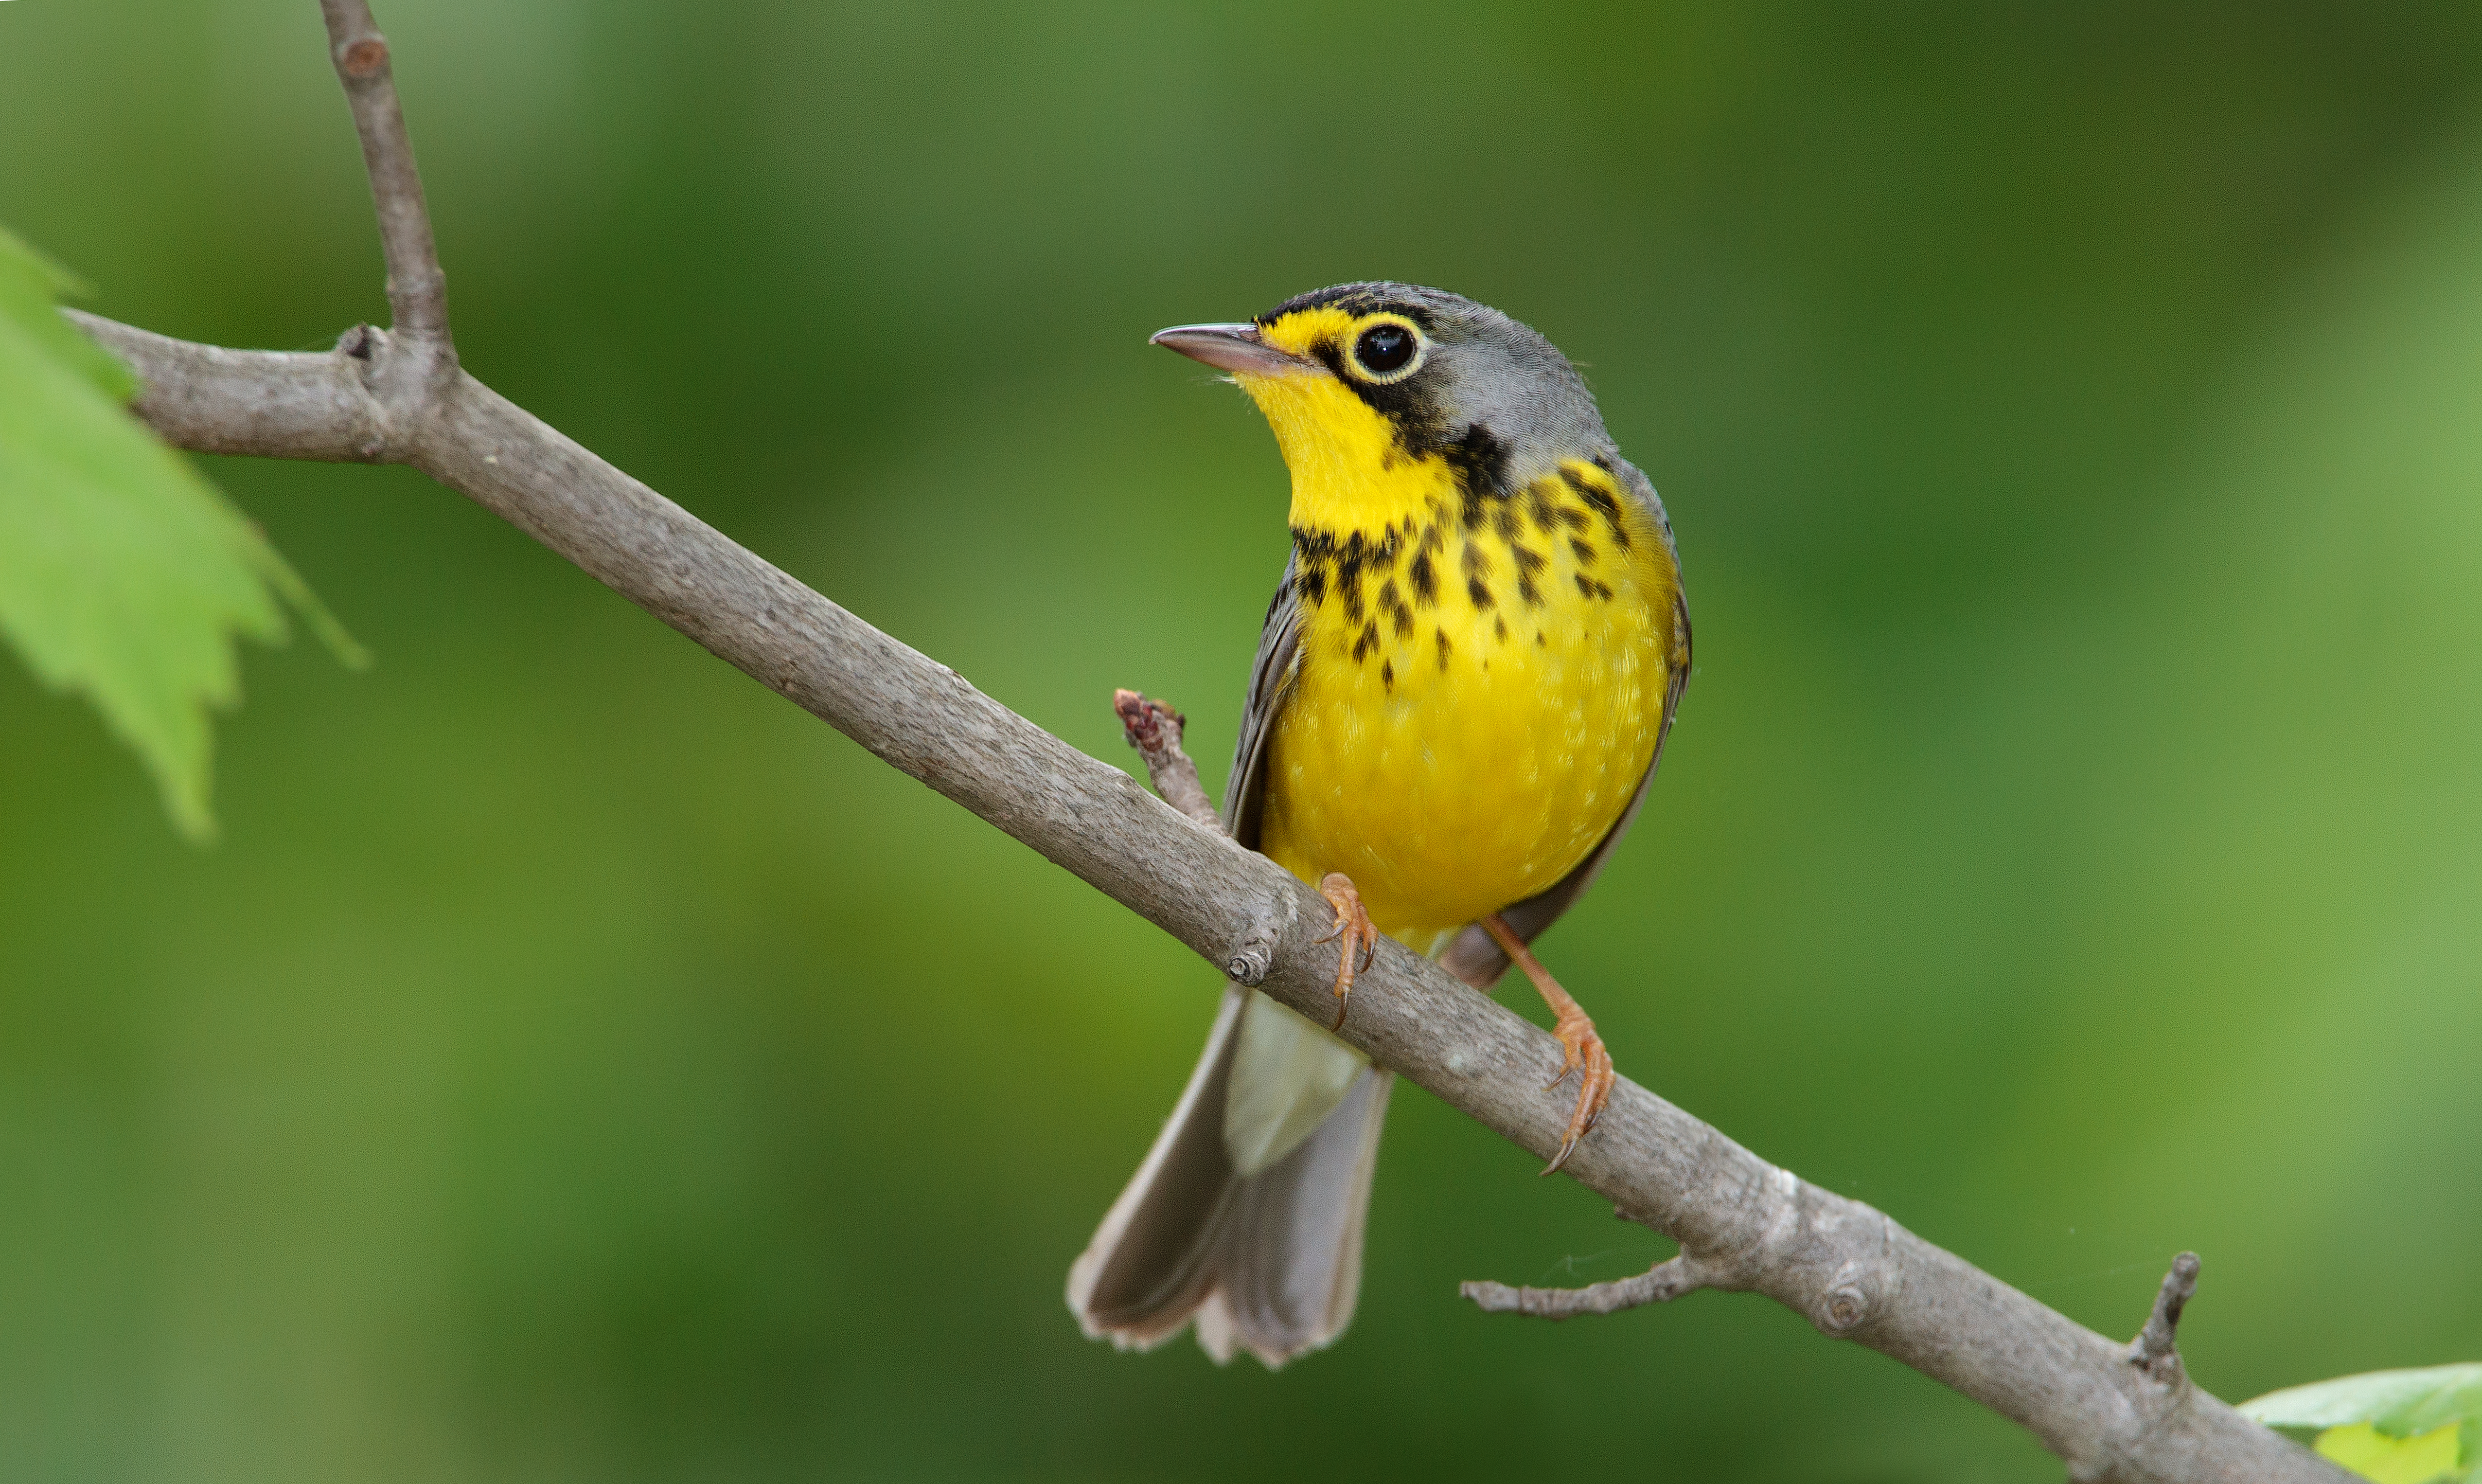 Boreal Forests Provide Stopover Habitat for Northern Migrants